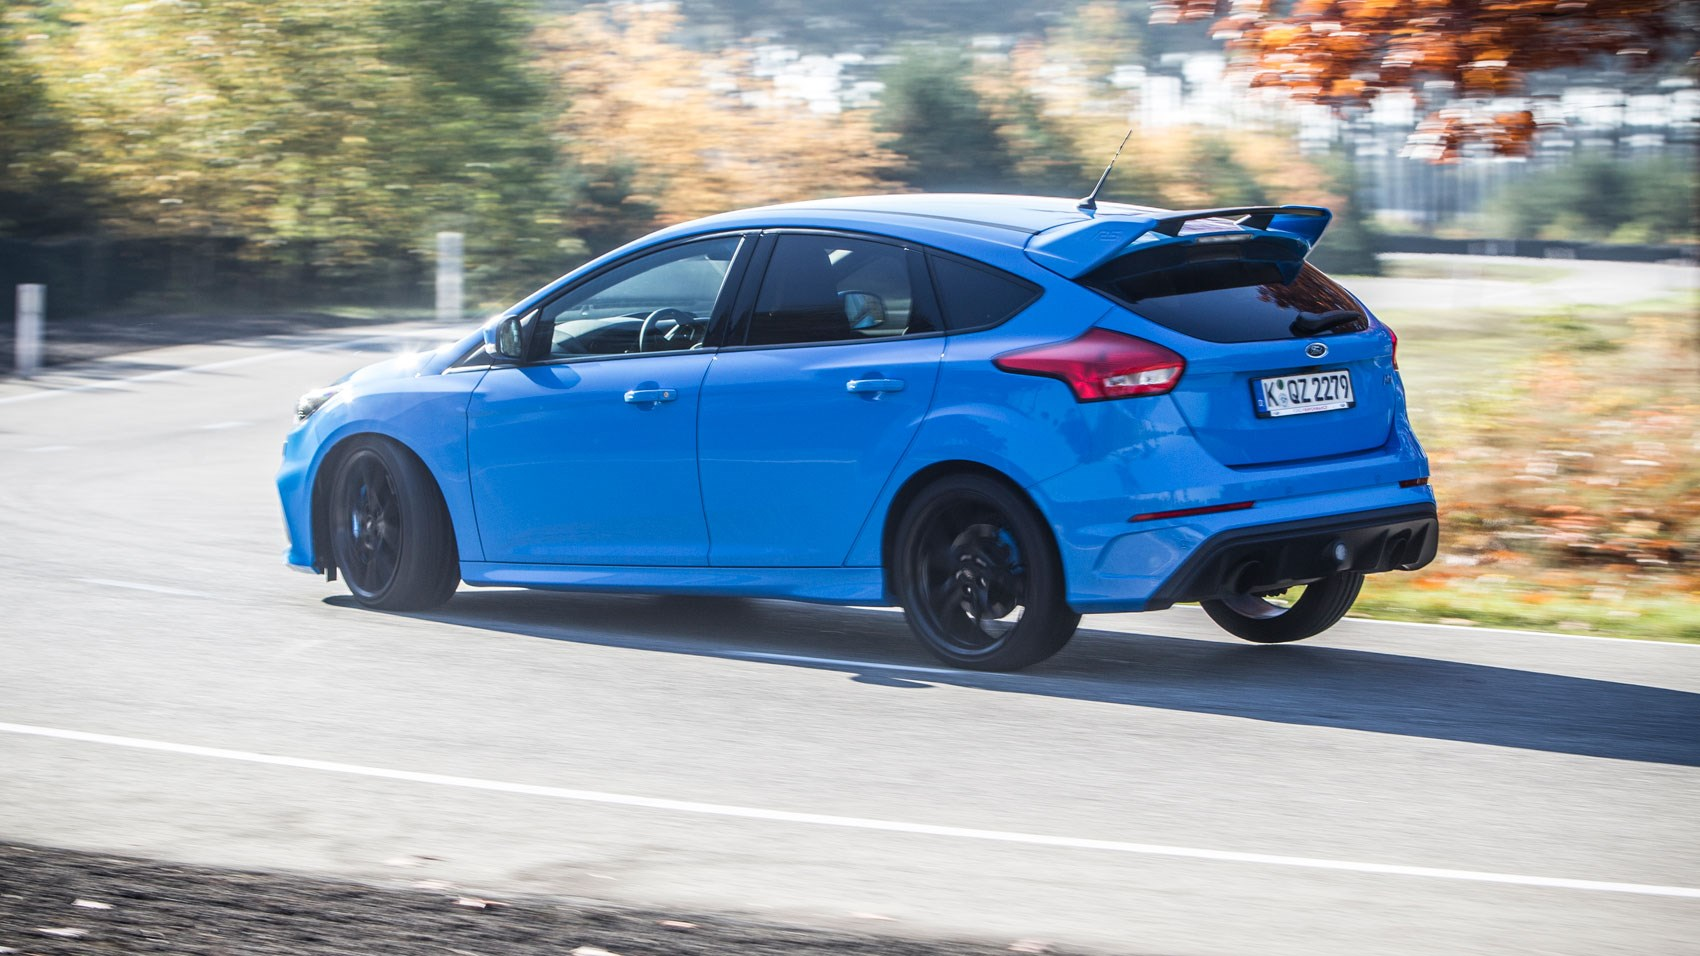 Photo Gallery & Ford Focus RS (2016) first ride review by CAR Magazine markmcfarlin.com